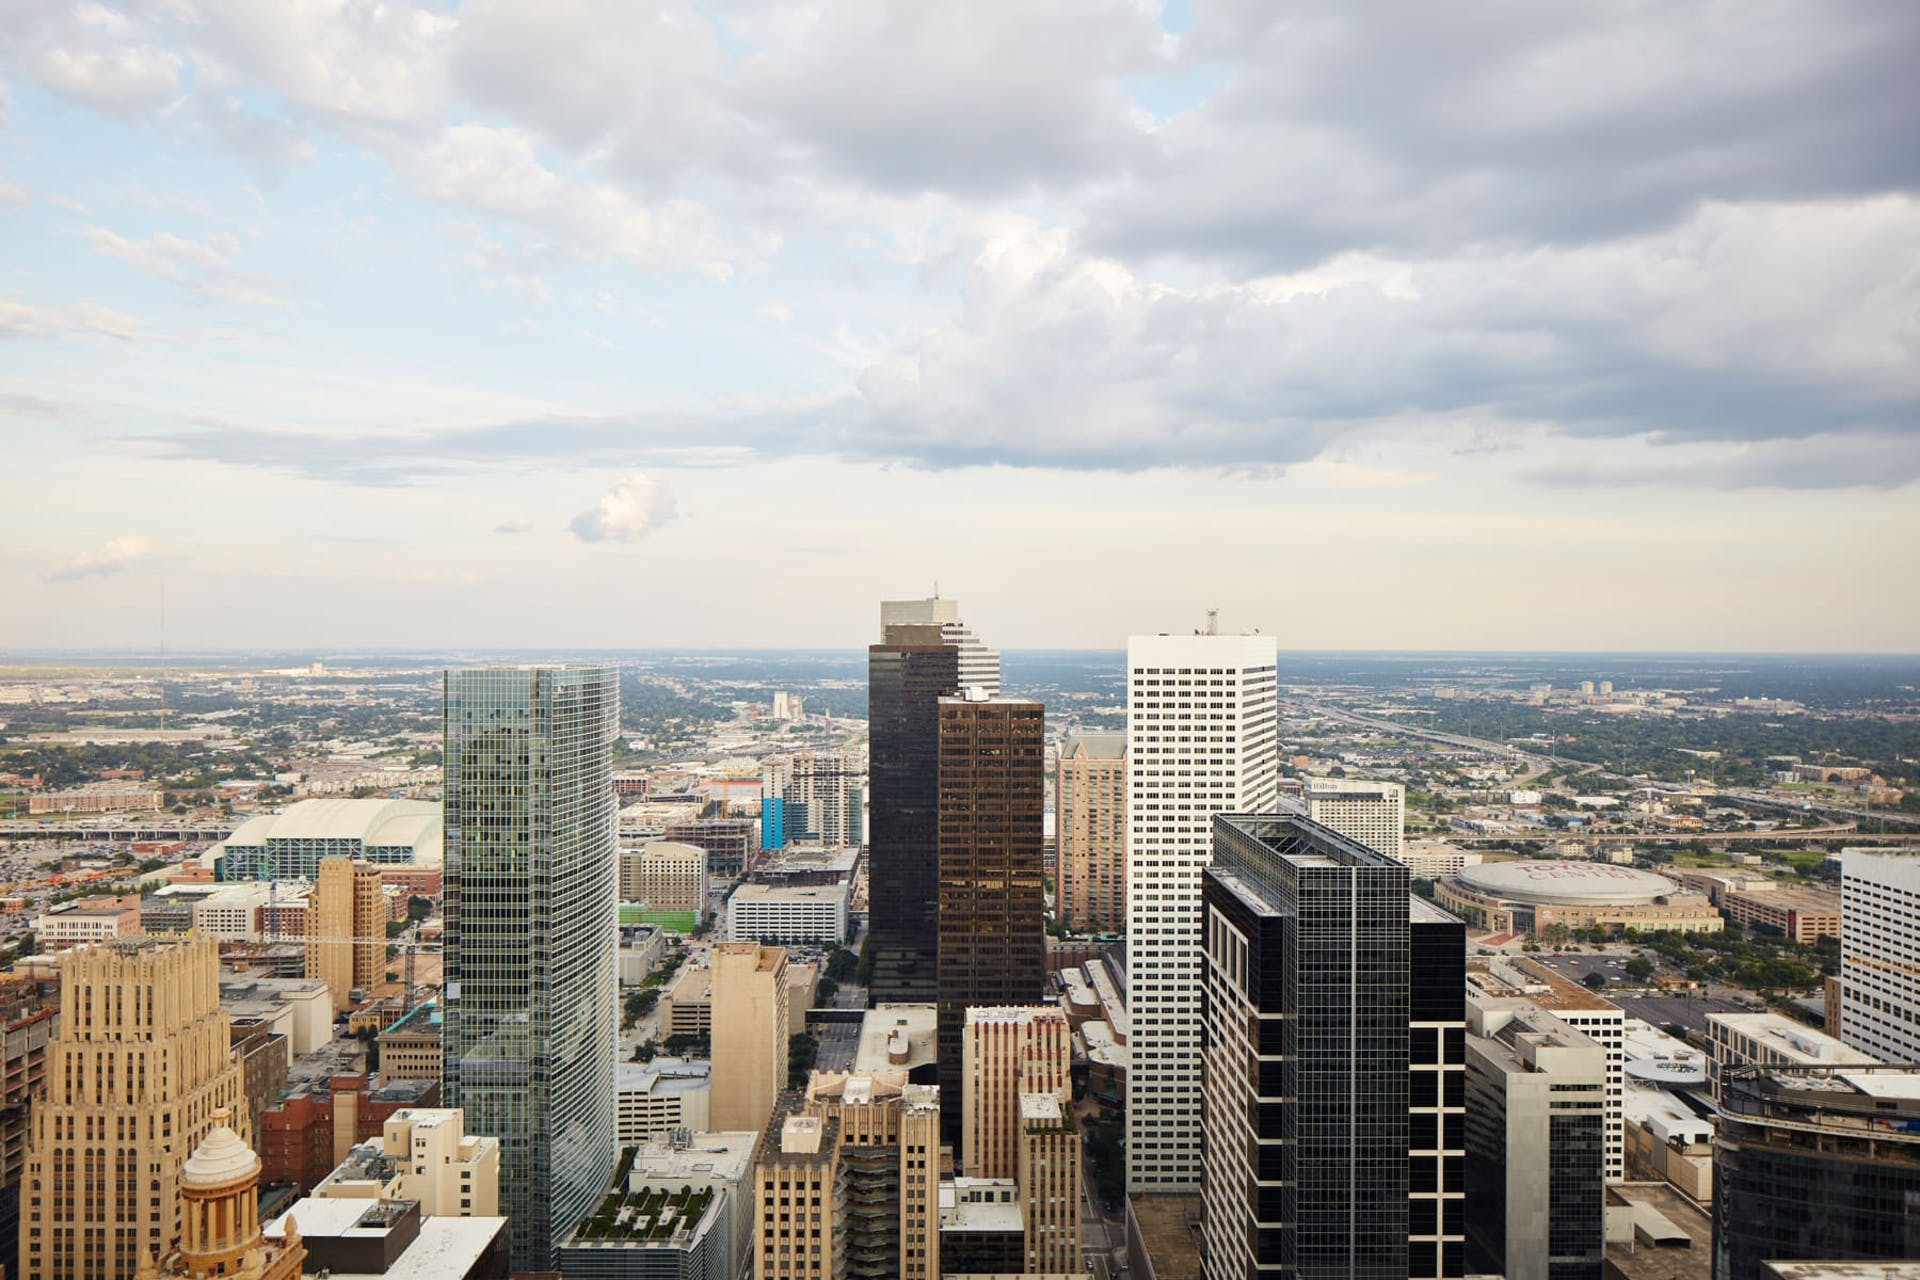 Skyline view of Houston, Texas